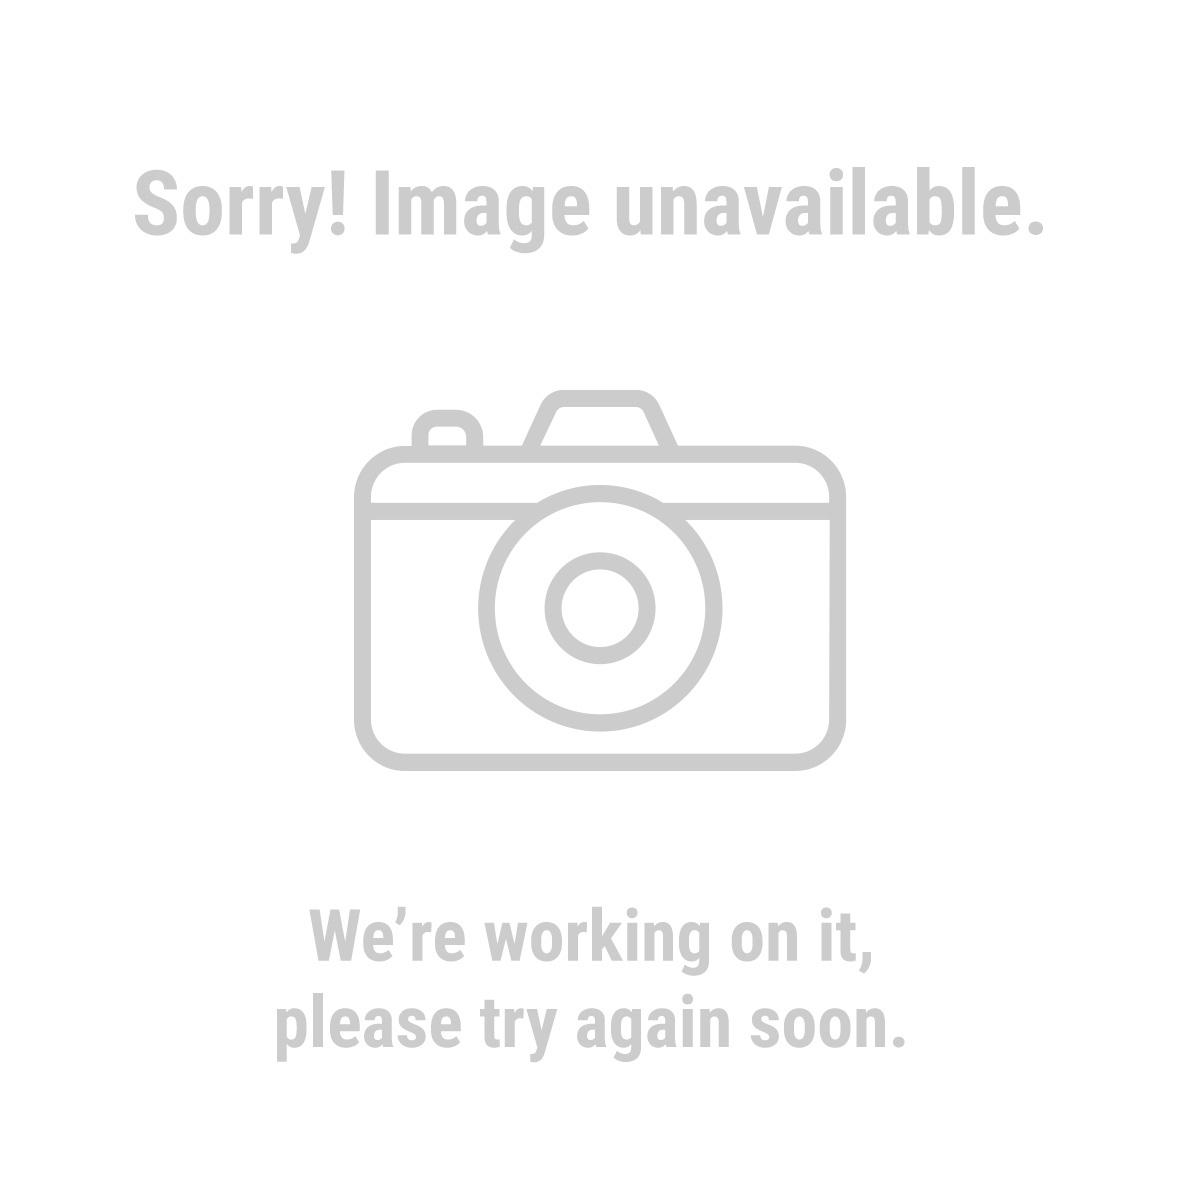 Chicago Electric Power Tools 63118 10 in., 15 Amp Benchtop Table Saw